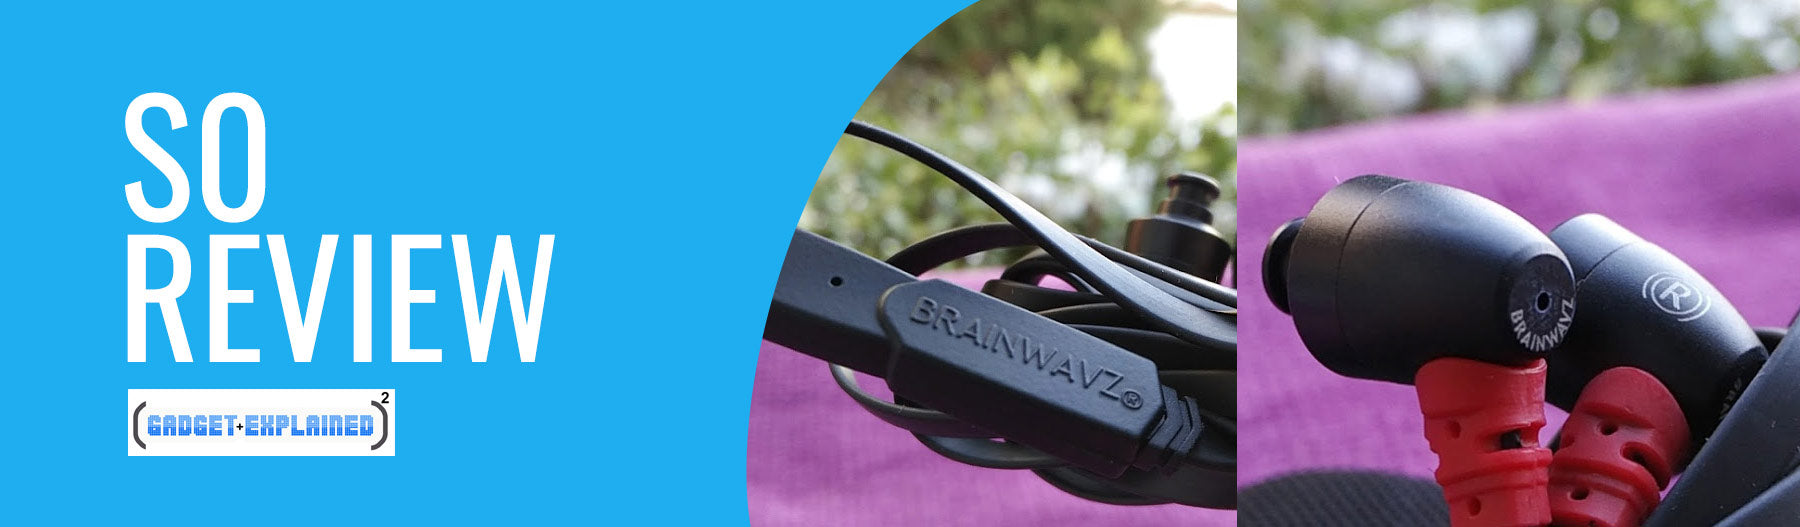 Brainwavz S0 (Zero) Review